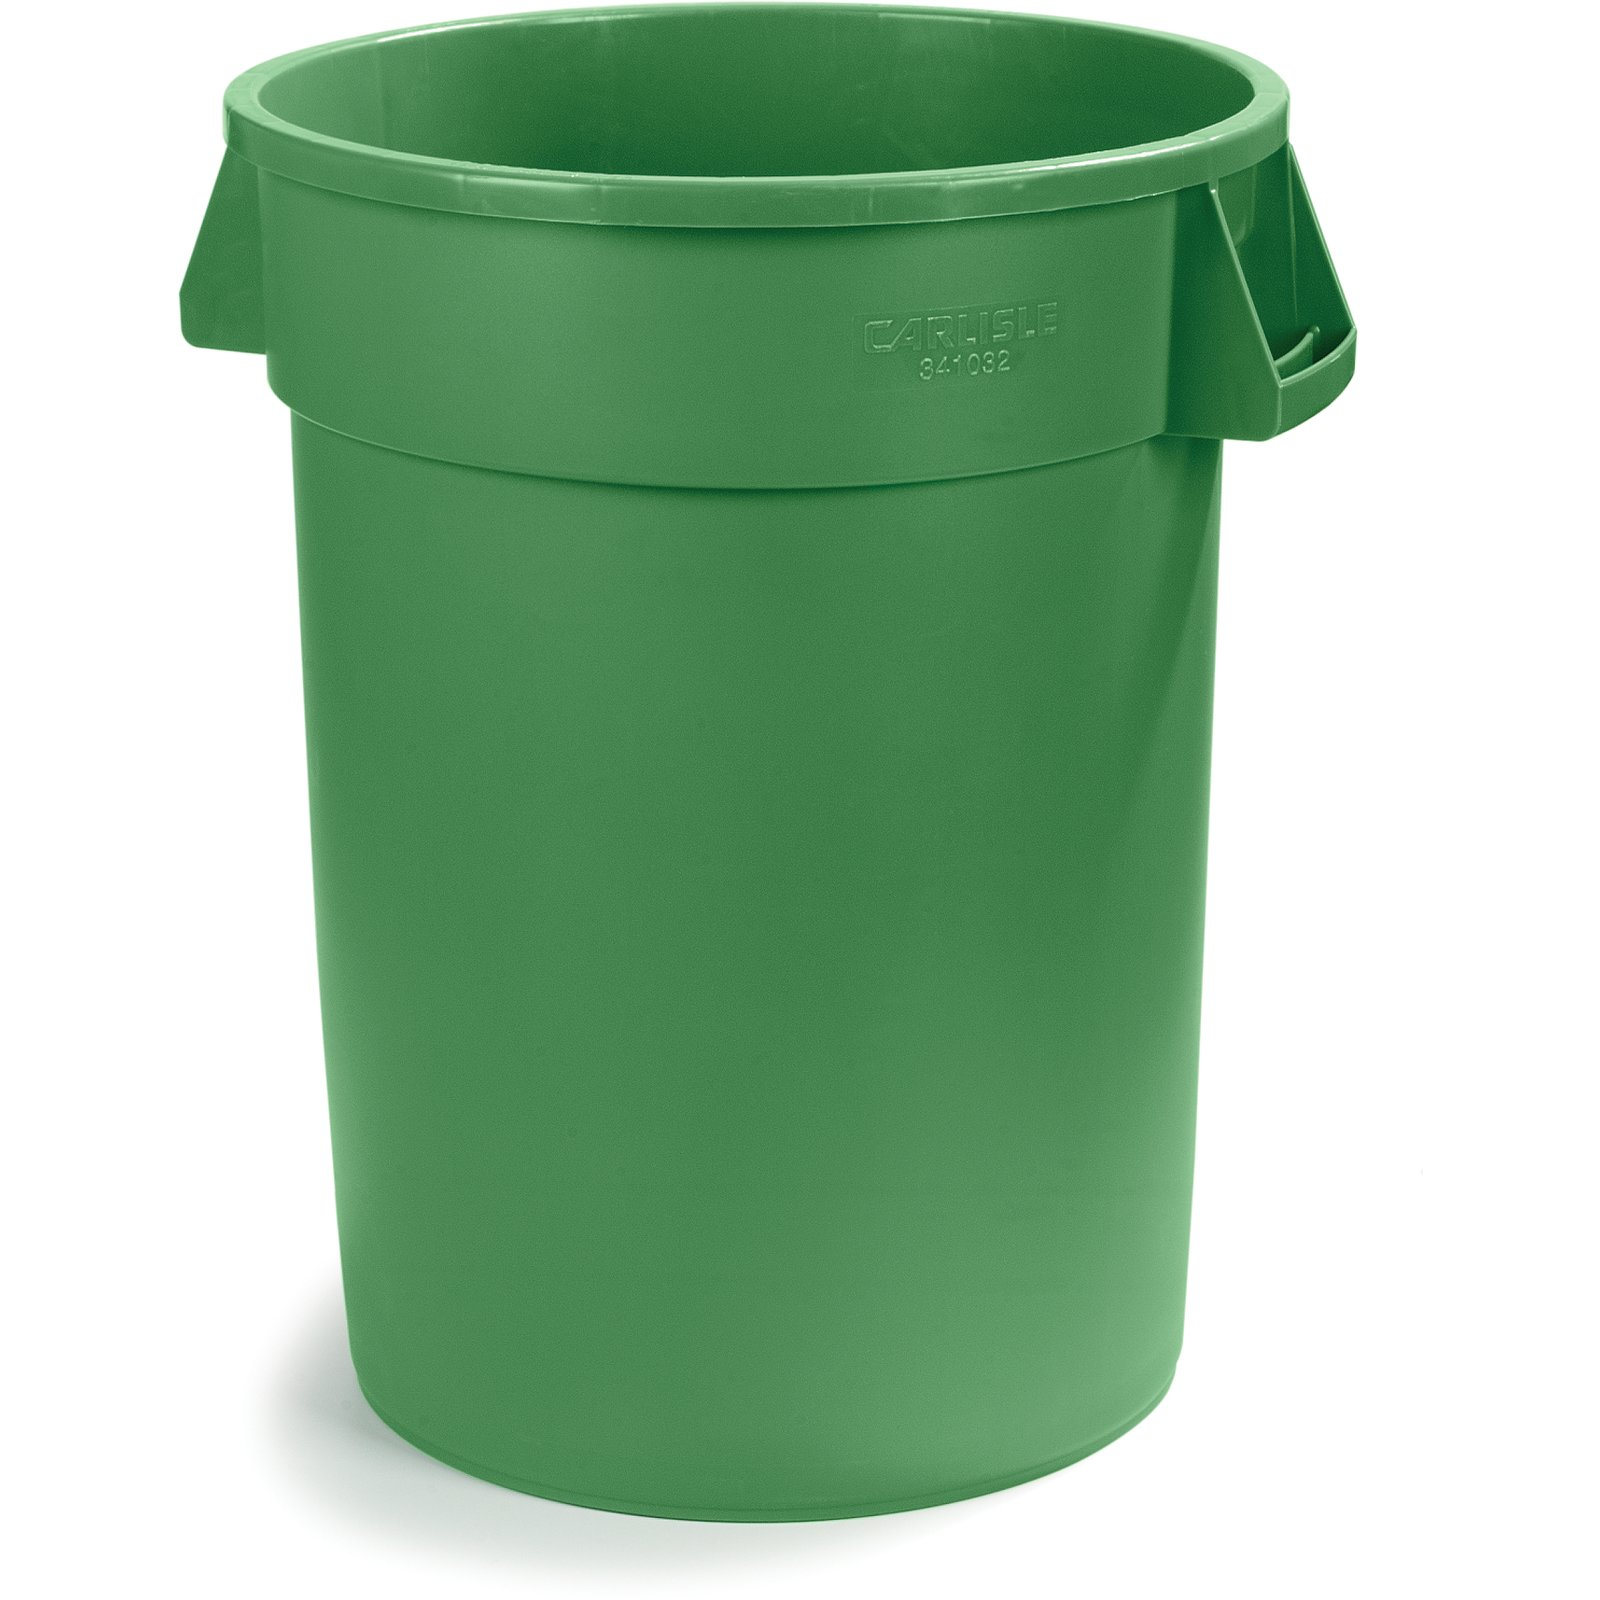 34103209 bronco round waste bin trash container 32 gallon green carlisle foodservice products - Garden waste containers ...